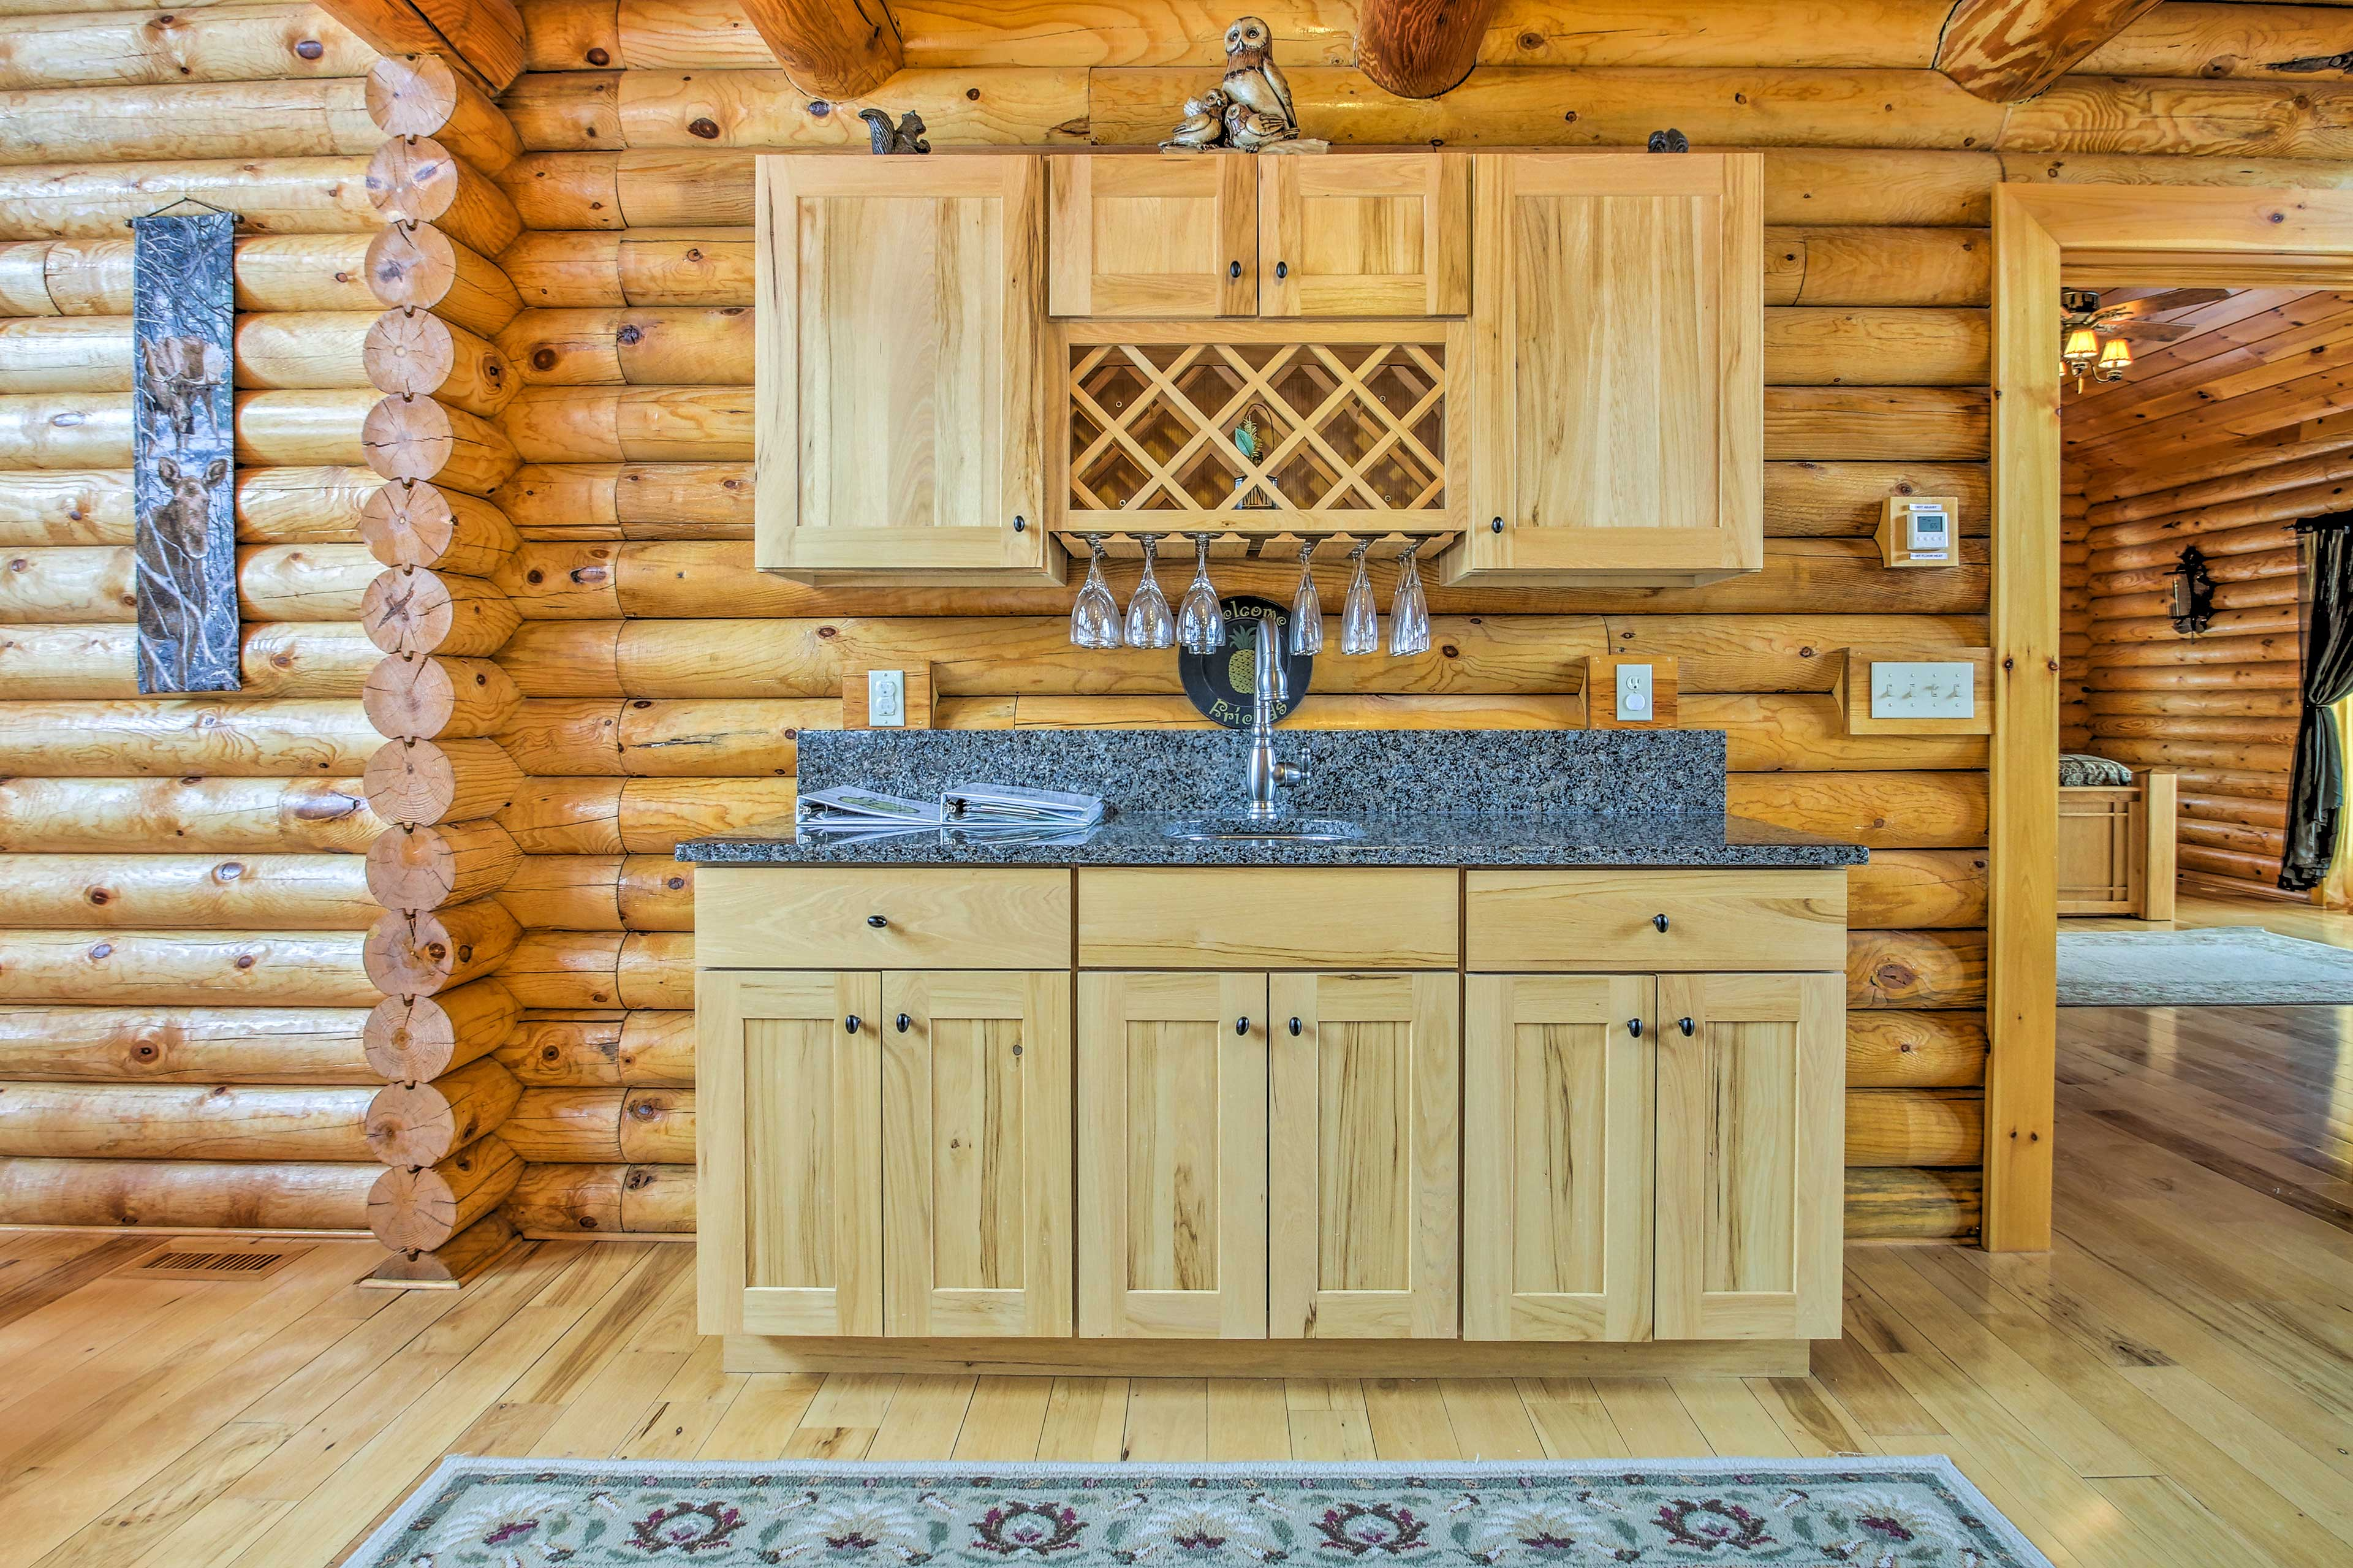 The wet bar adds a splash of luxury to the space.